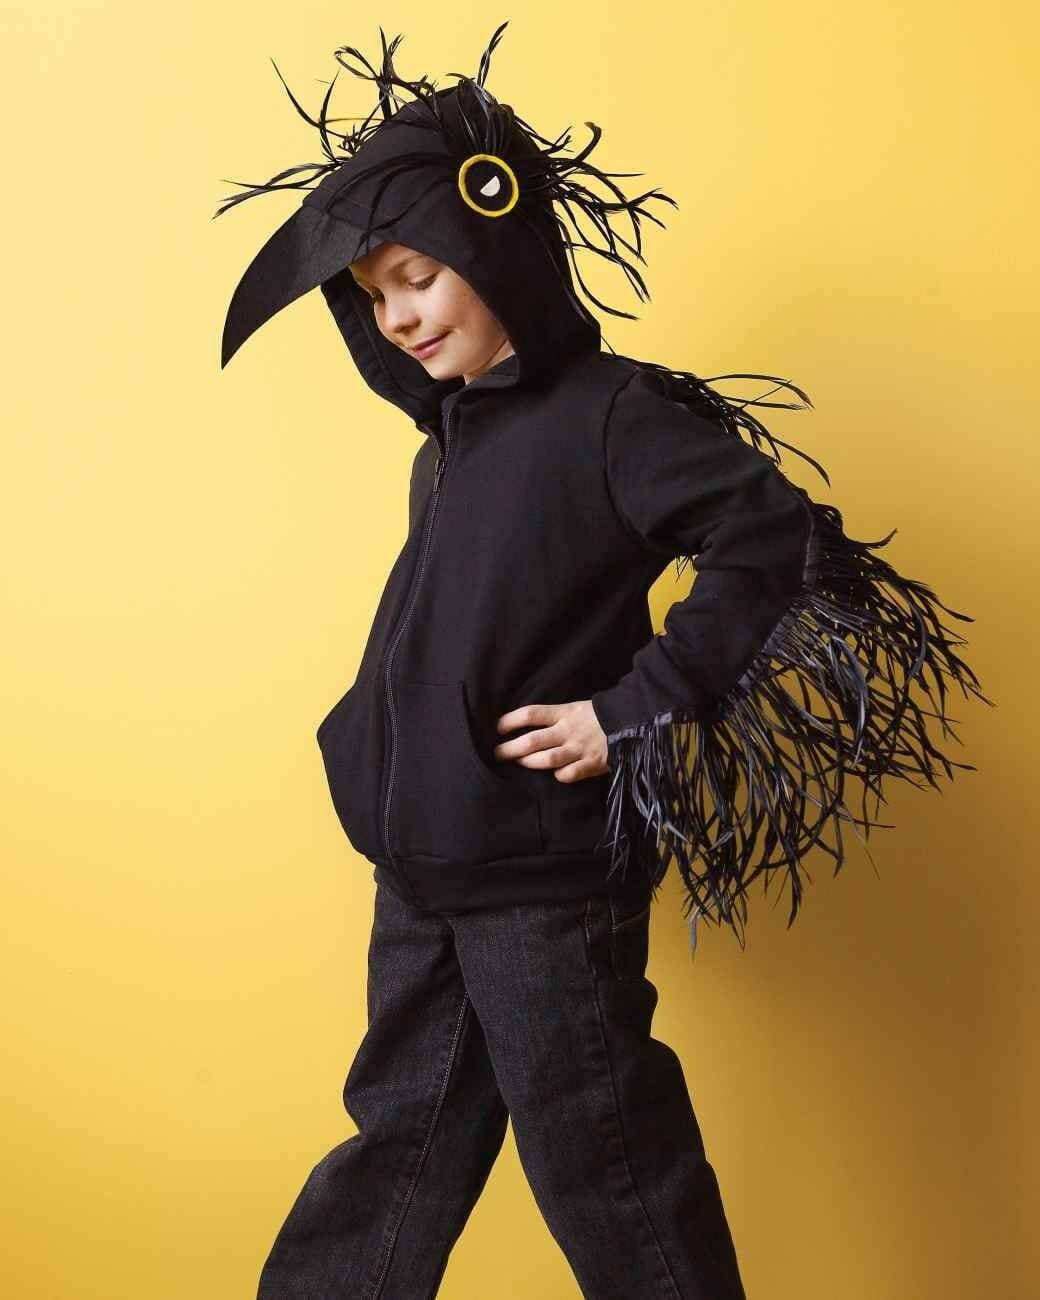 Best ideas about Easy DIY Halloween Costumes For Kids . Save or Pin Easy Halloween Costume Ideas for Adults and Kids Modernize Now.